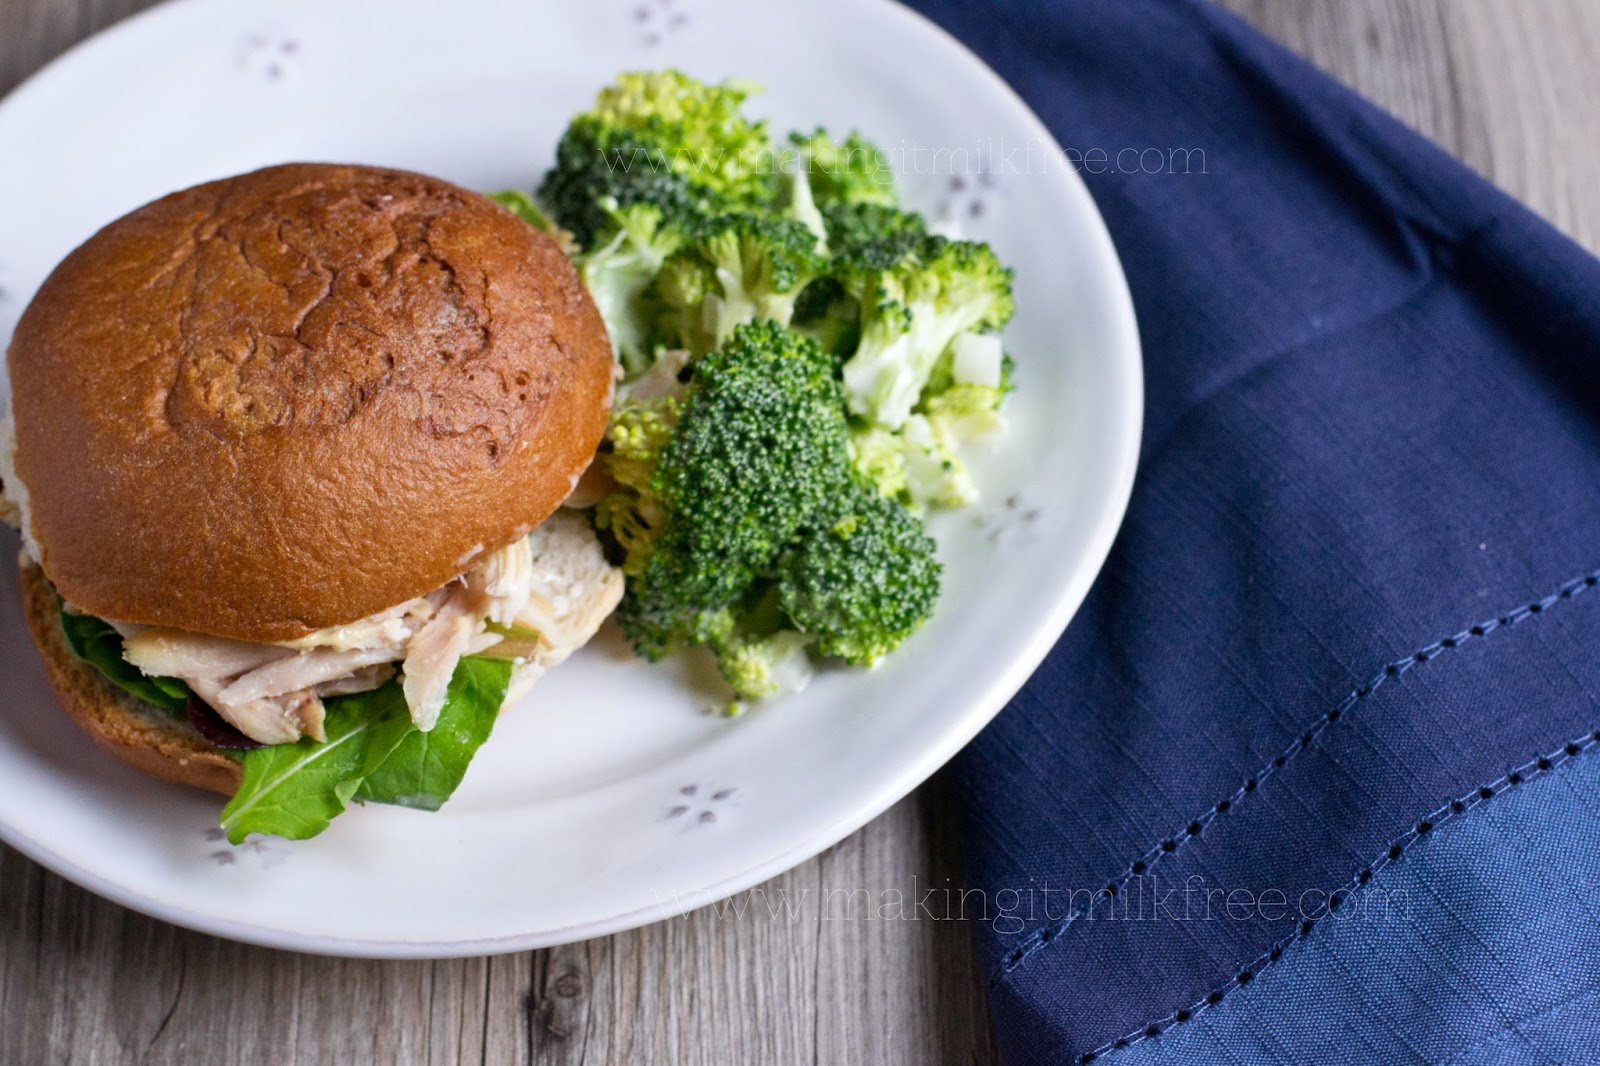 #glutenfree #dairyfree #eggfree #chicken #caesar #sandwiches